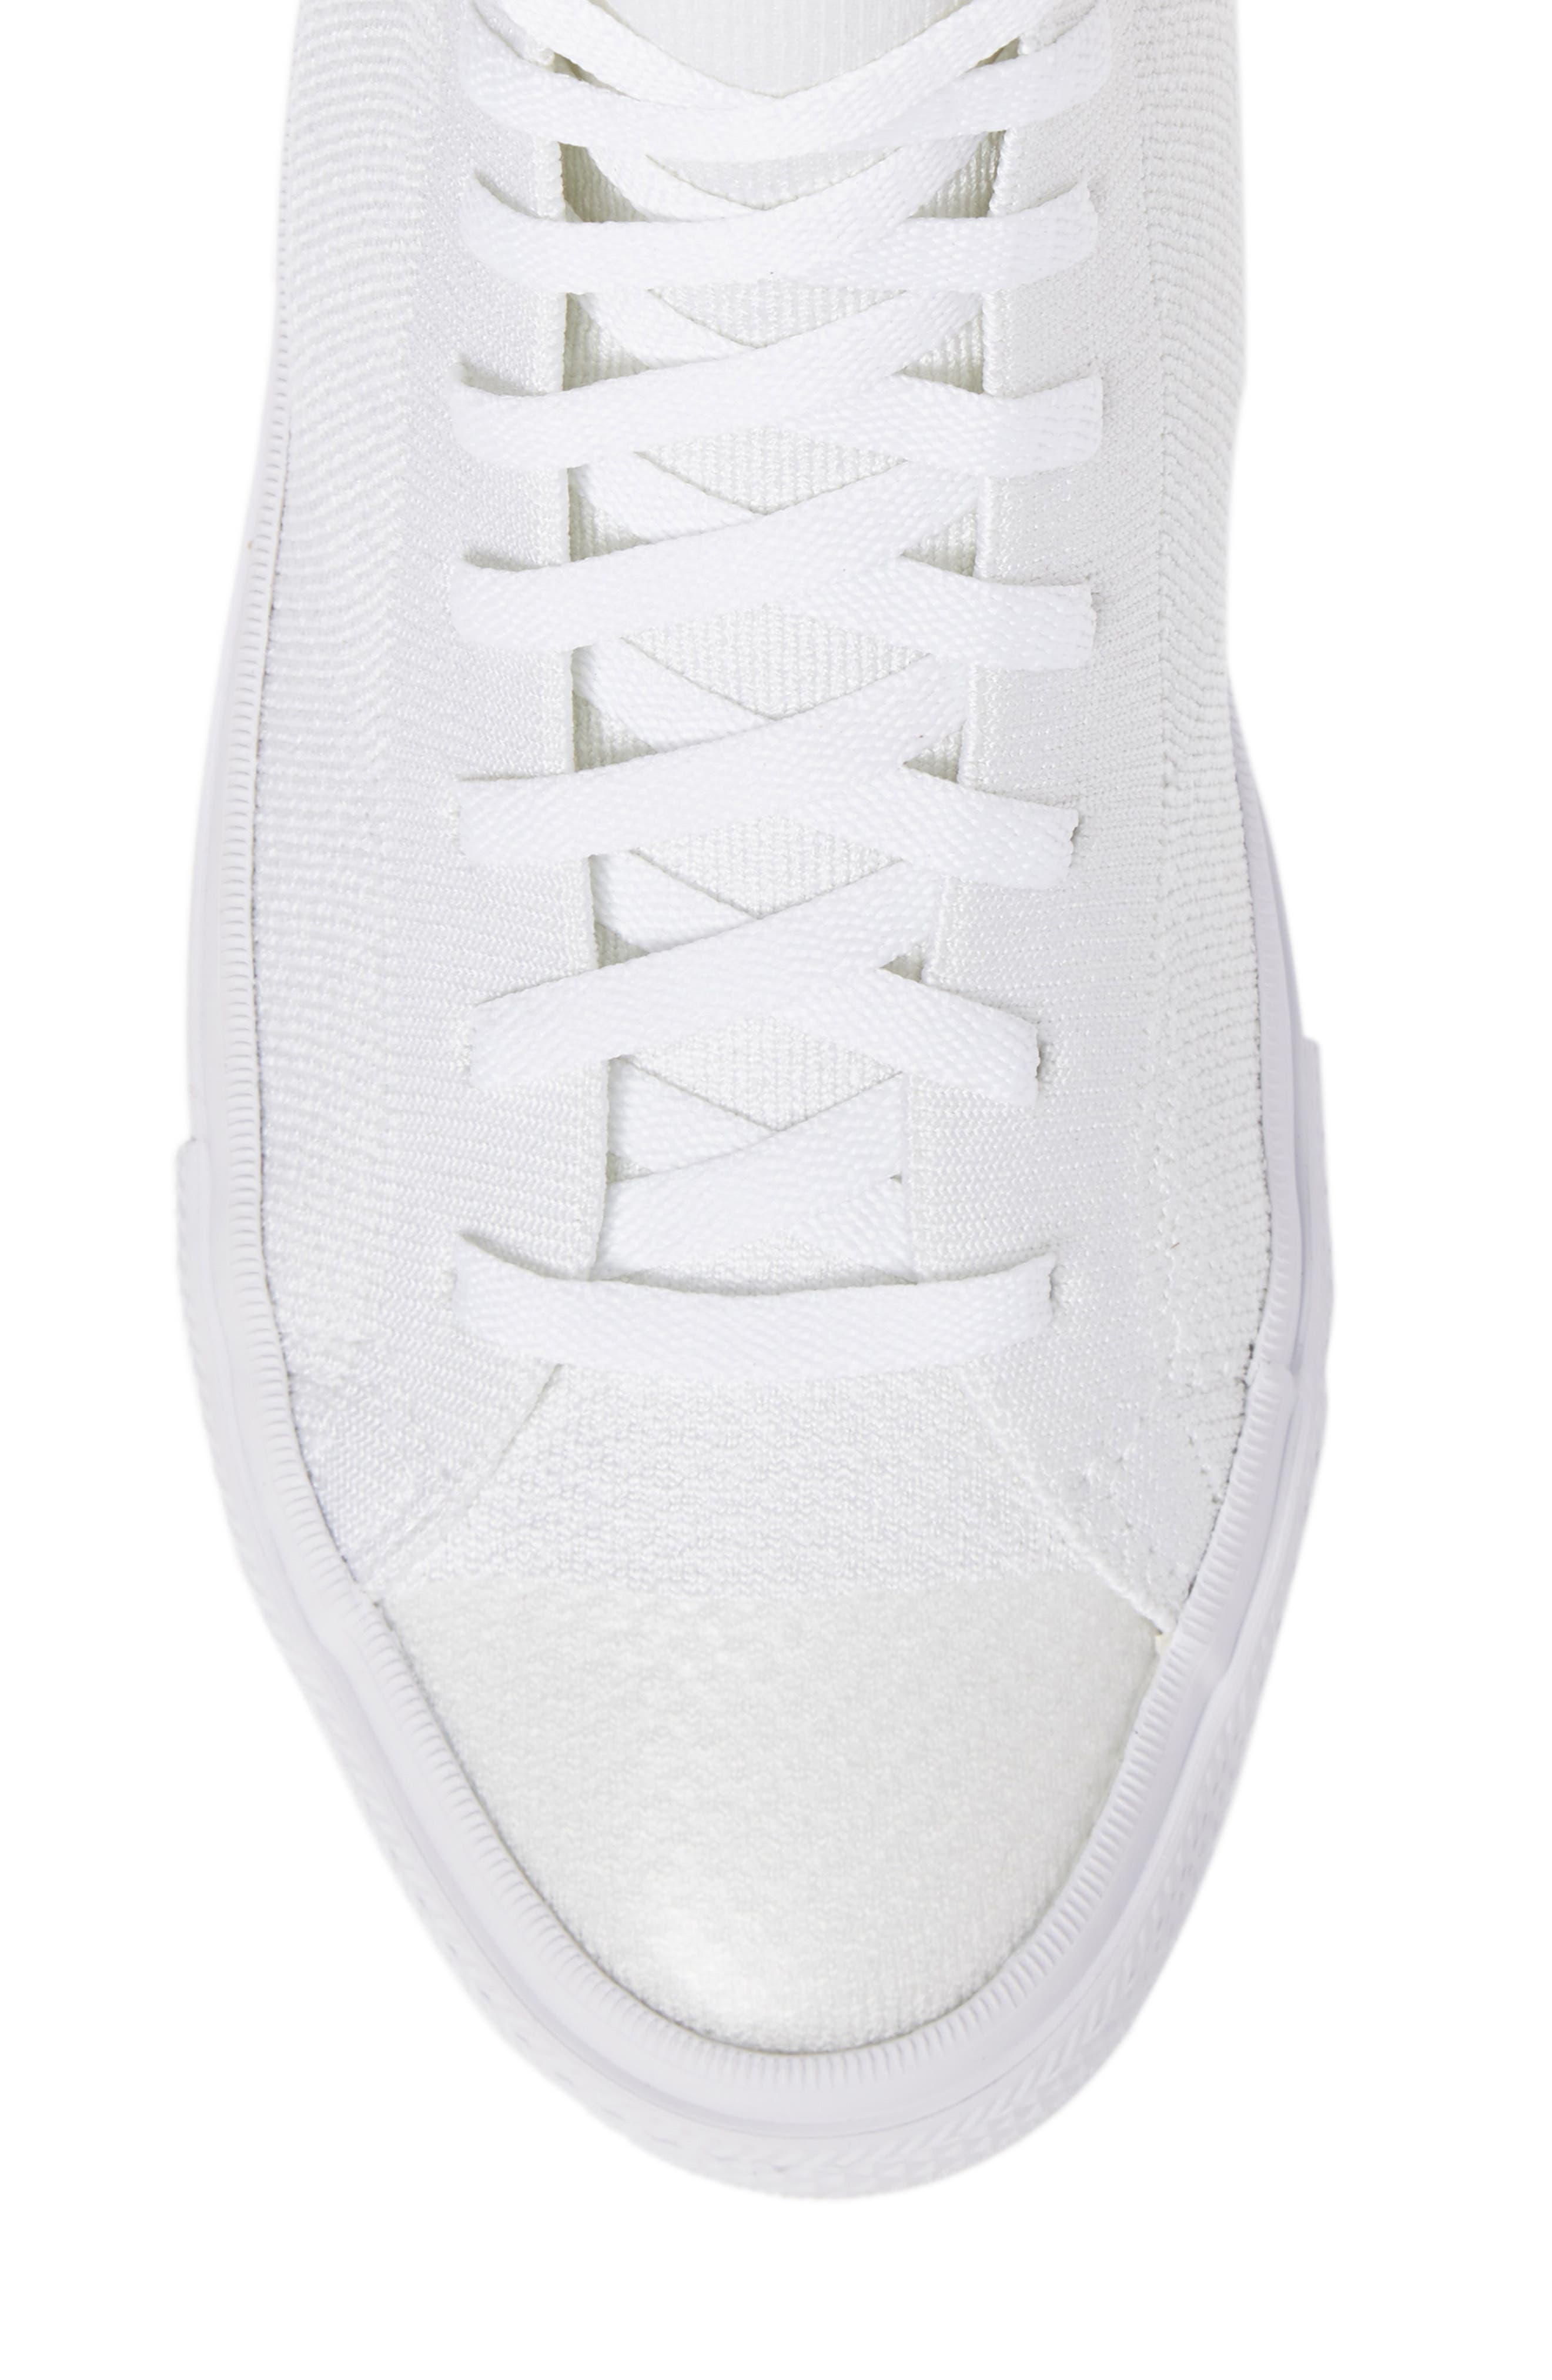 Chuck Taylor<sup>®</sup> All Star<sup>®</sup> Flyknit Hi Sneaker,                             Alternate thumbnail 28, color,